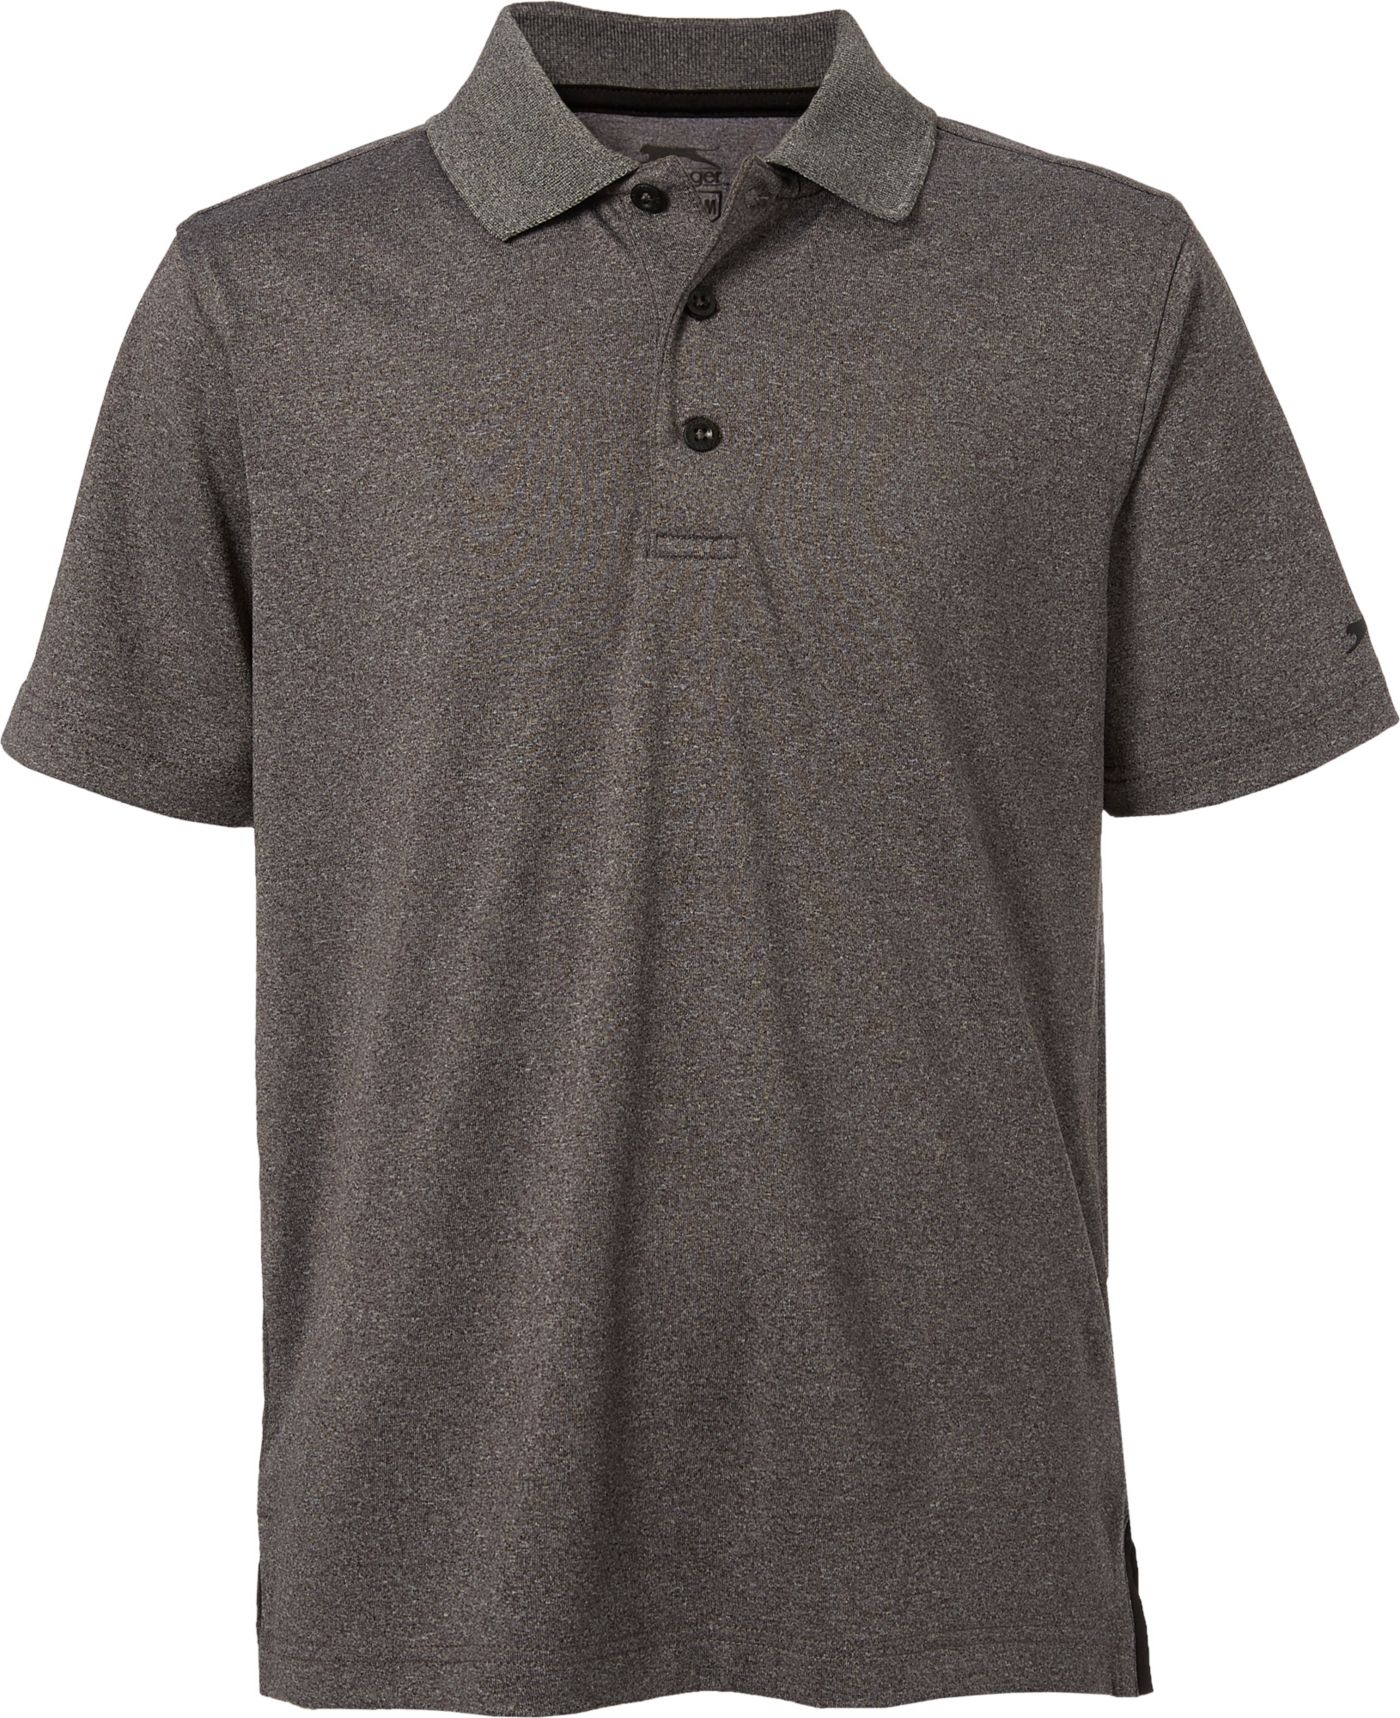 Slazenger Boys' Solid Polo